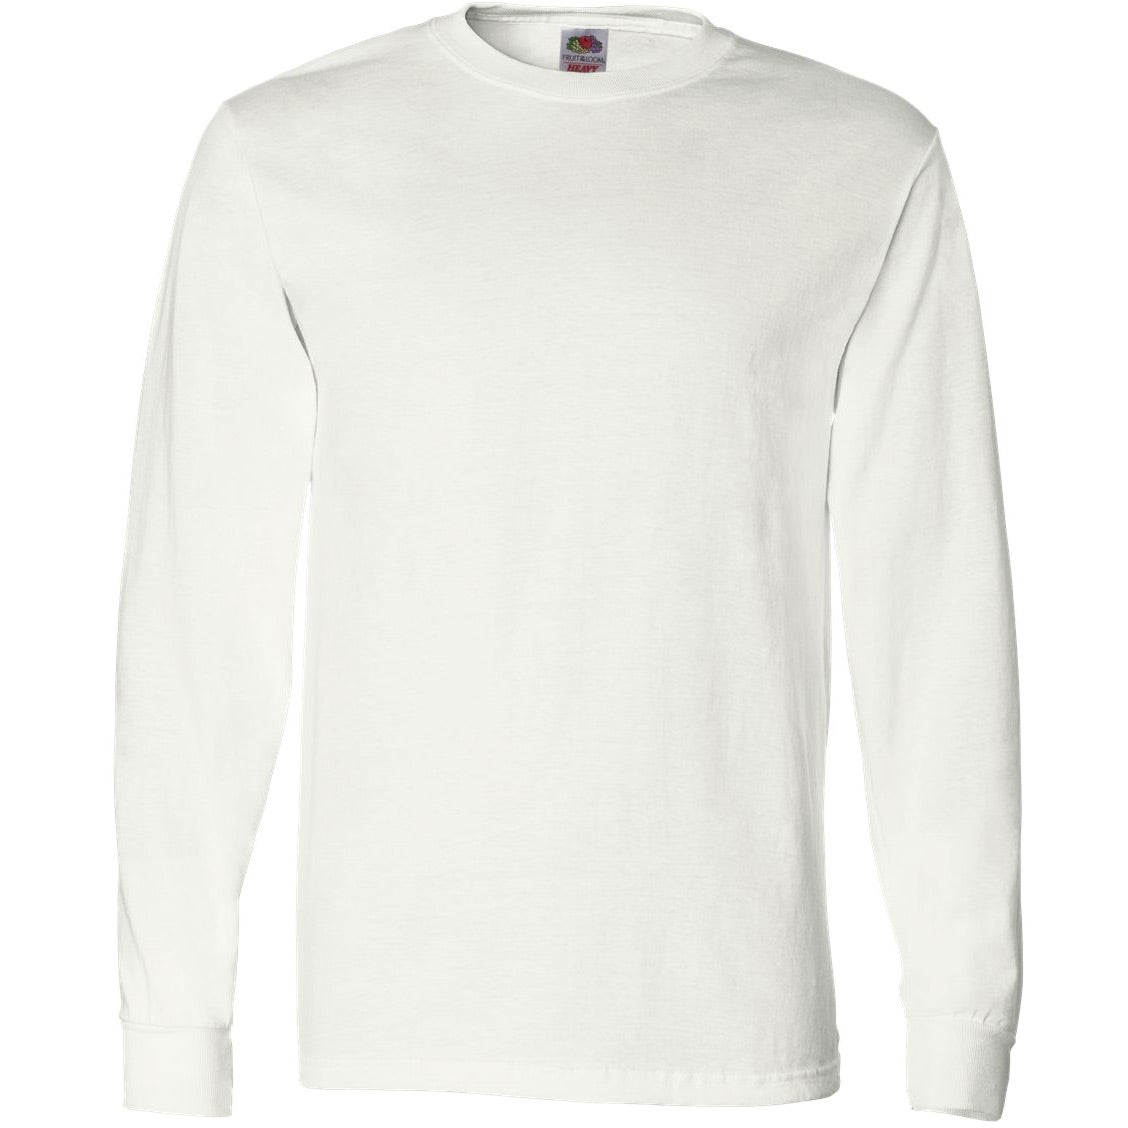 Fruit of the loom long sleeve cotton t shirt white for Good quality long sleeve t shirts